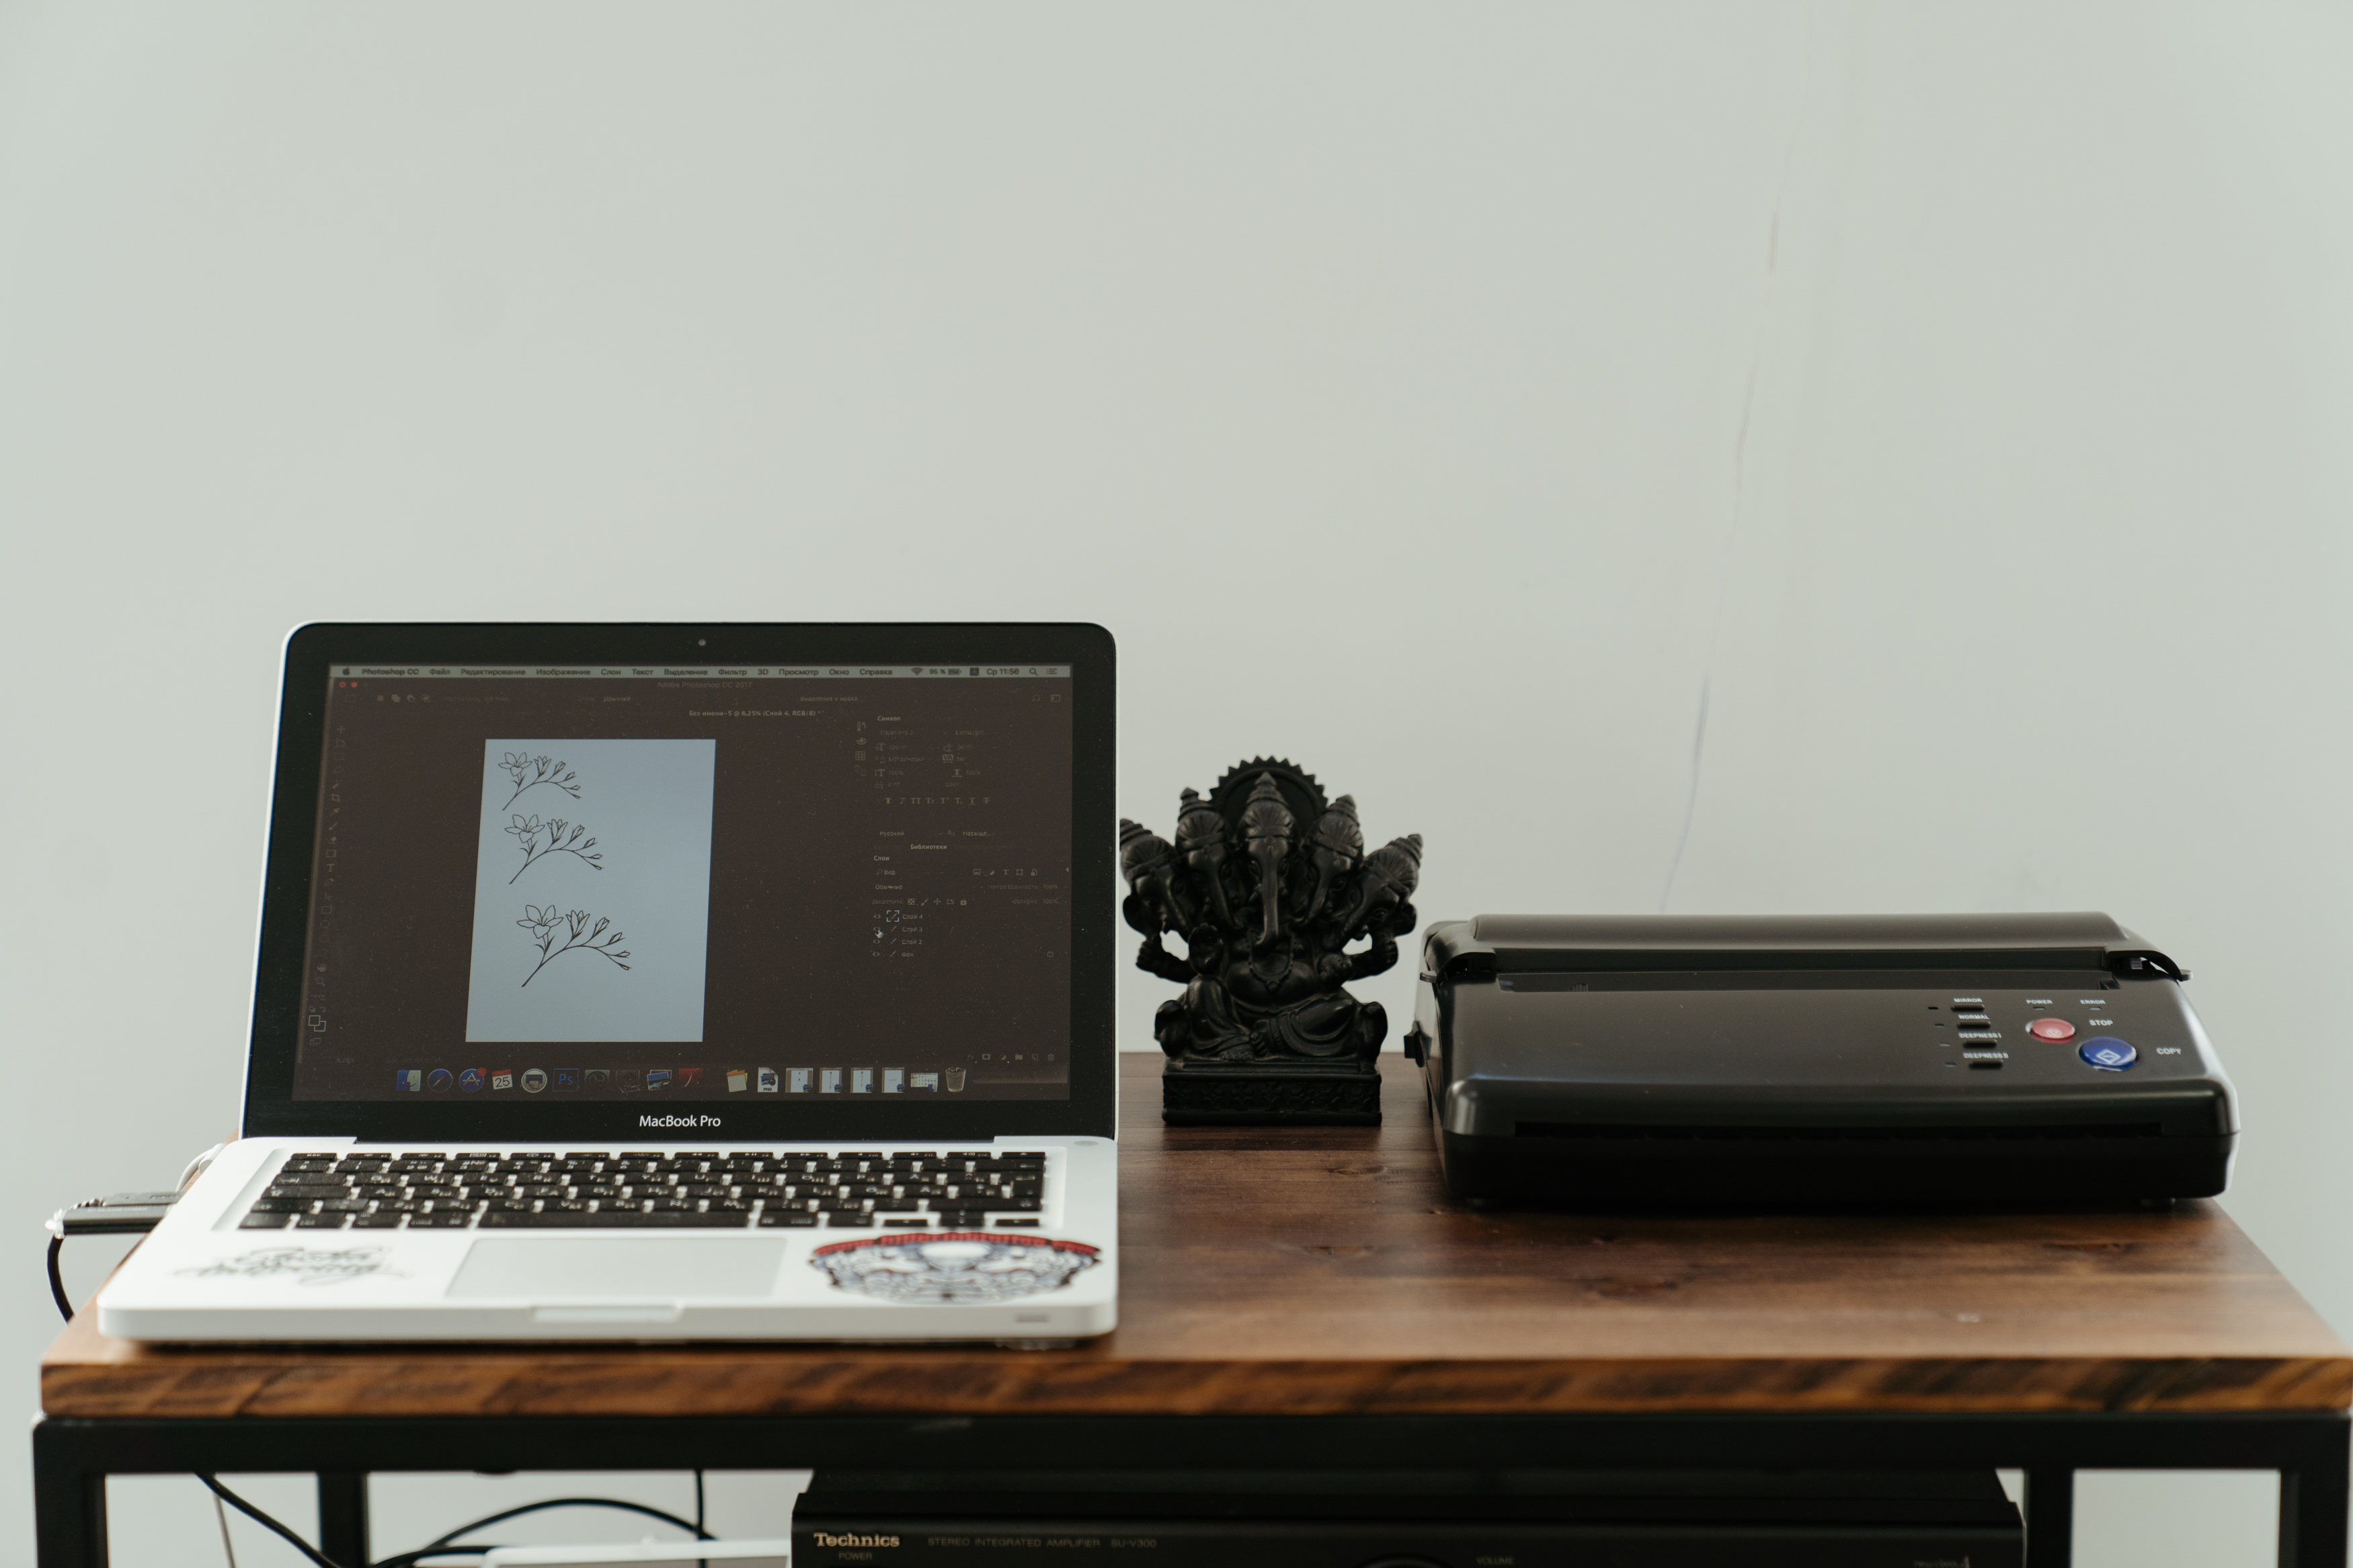 Macbook Pro connected to a printer. It has an image of flowers on the screen that is about to be printed.